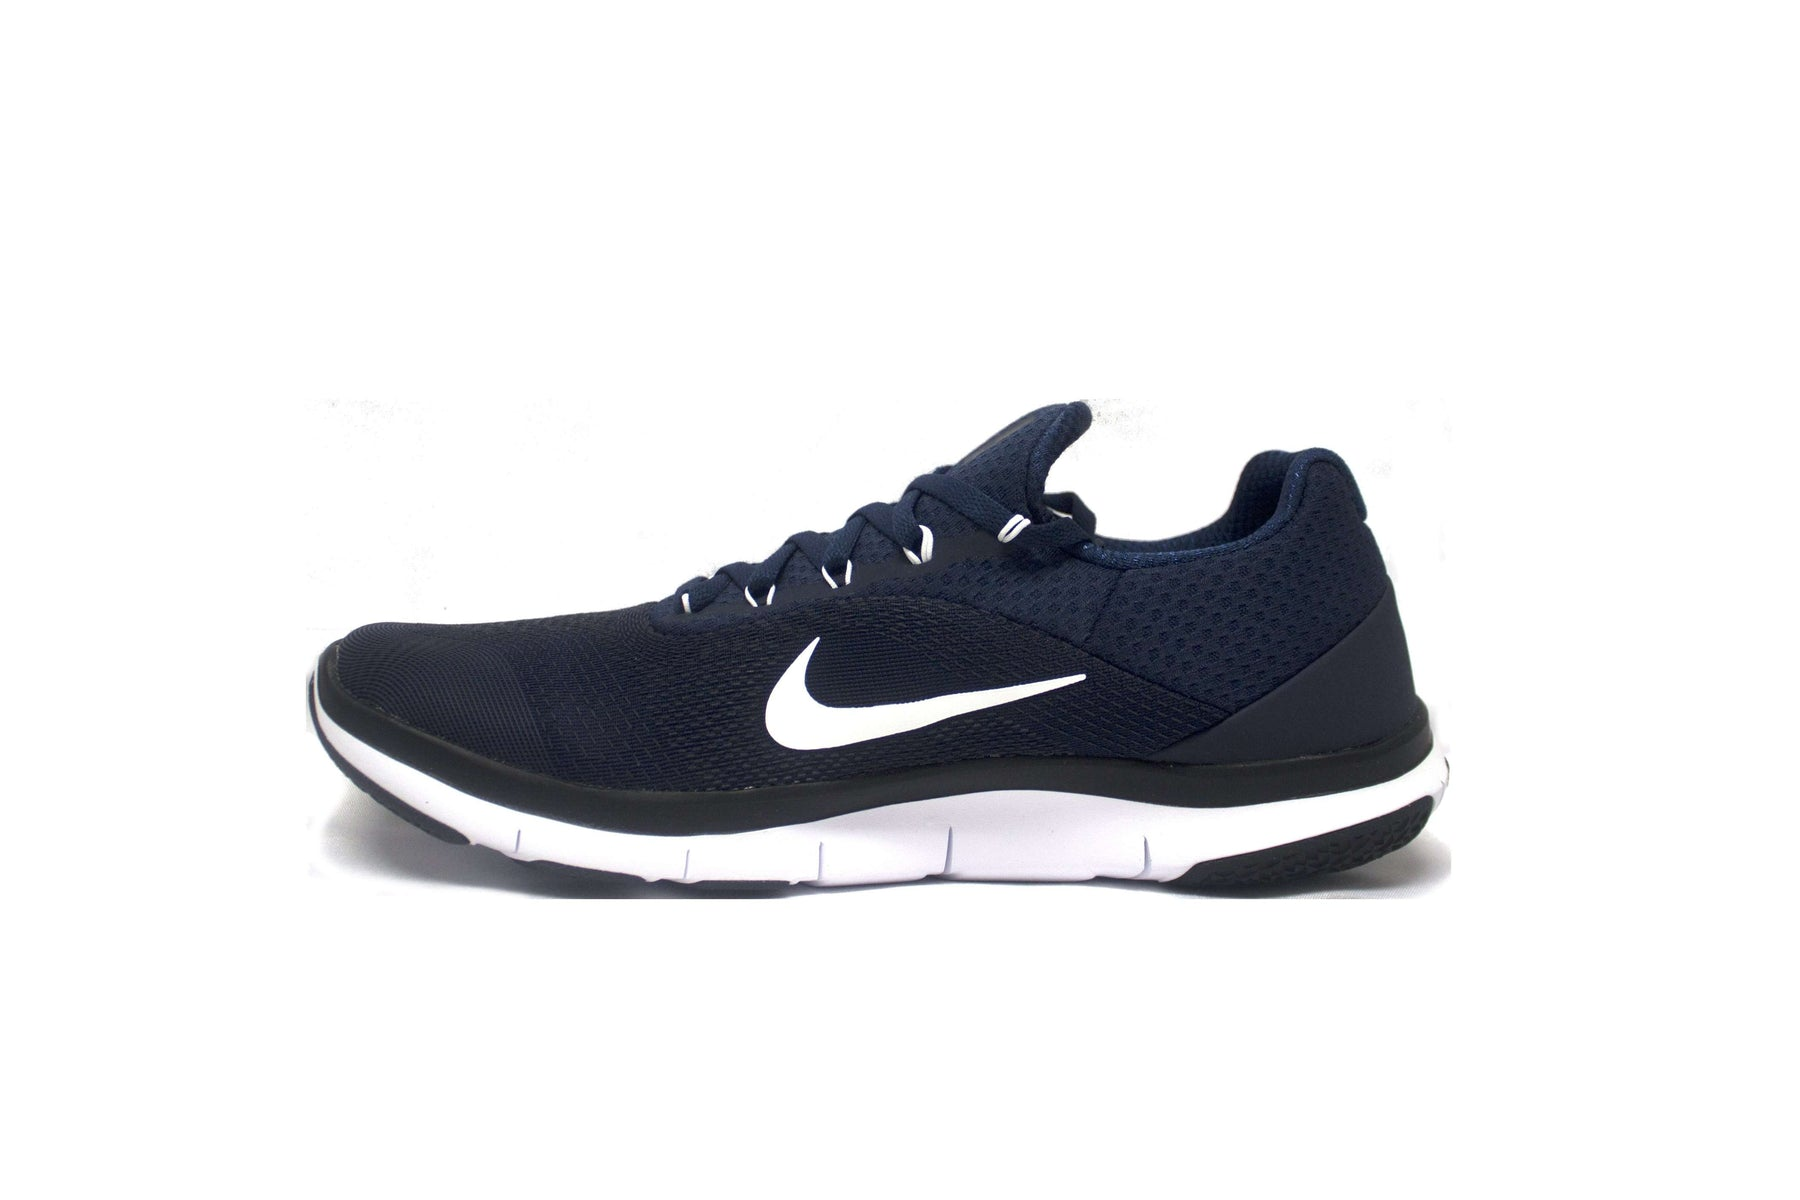 b925bc98e525 ... Nike Men s Free Trainer v7 TB Training Shoes - League Outfitters ...